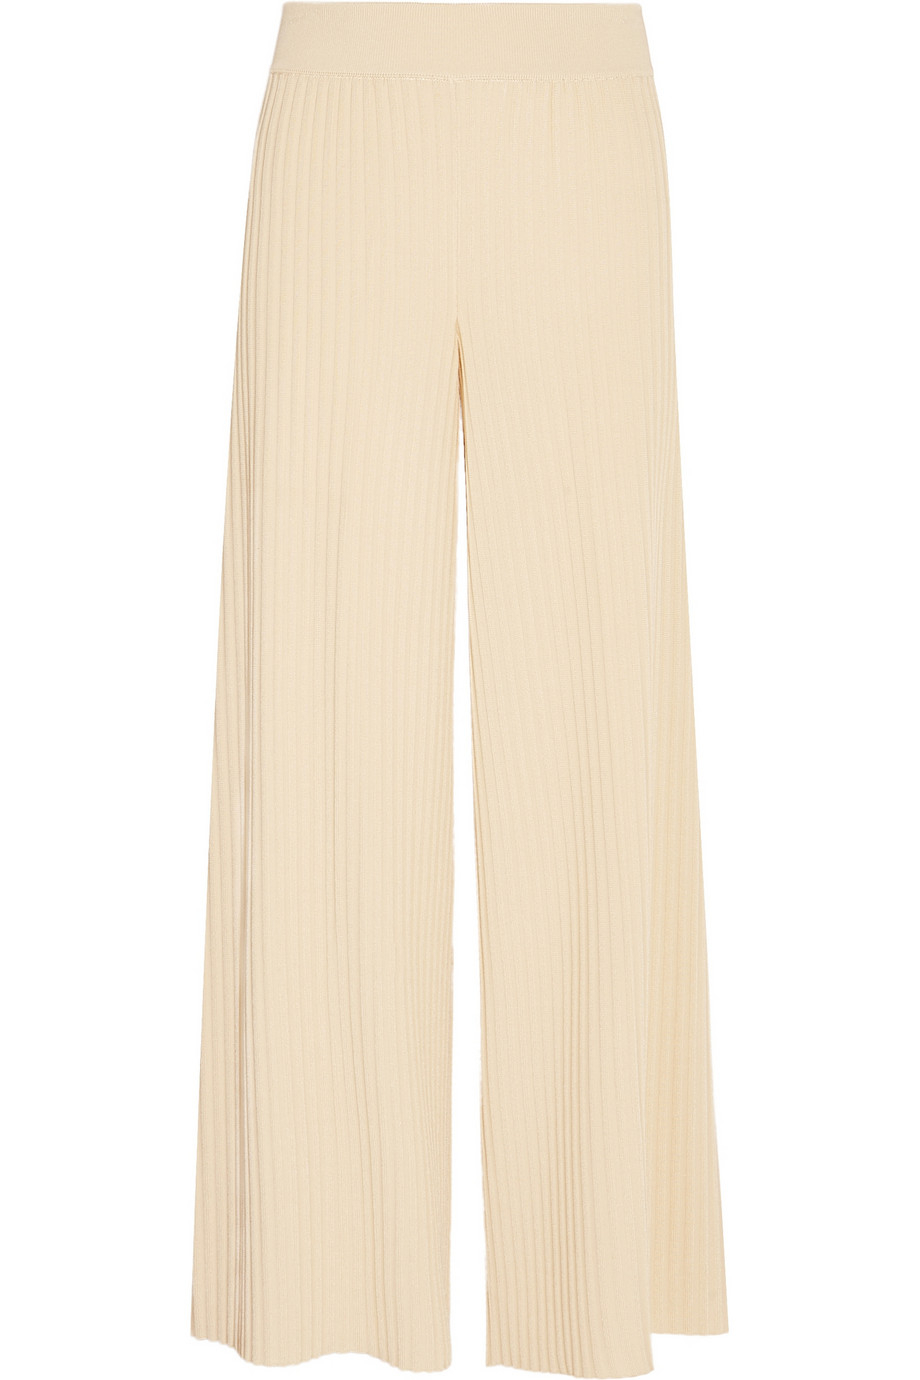 Stella mccartney Ribbed Jersey Wide-leg Pants in Natural | Lyst